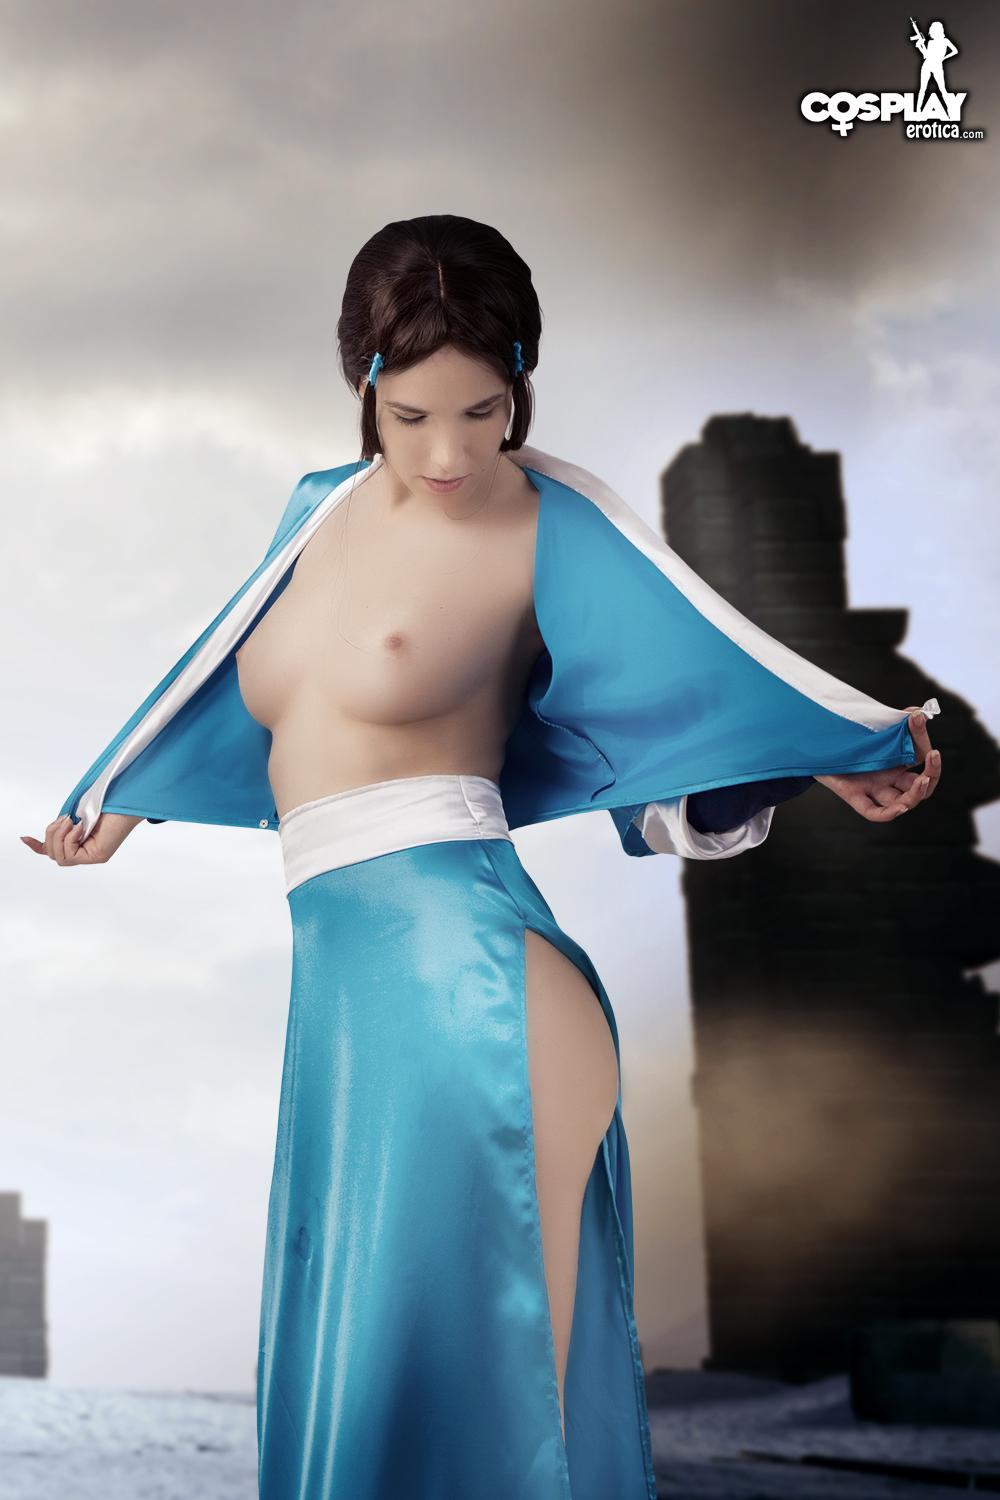 Anime Cosplay Porn Caption - CosplayErotica - Katara (Avatar) nude cosplay